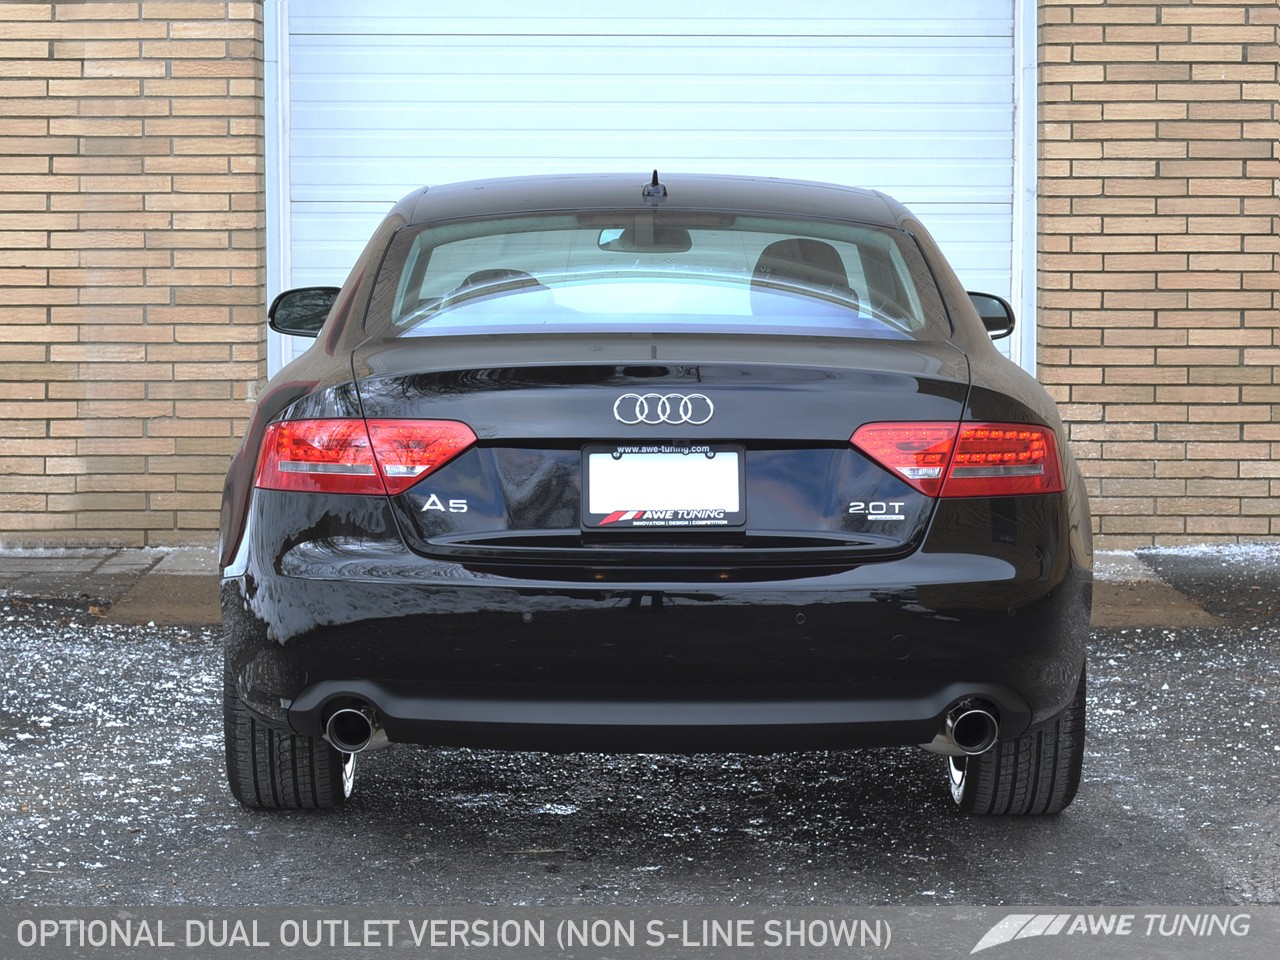 b8 a5 exhaust group awe tuning audi a5 2 0t exhaust system. Black Bedroom Furniture Sets. Home Design Ideas